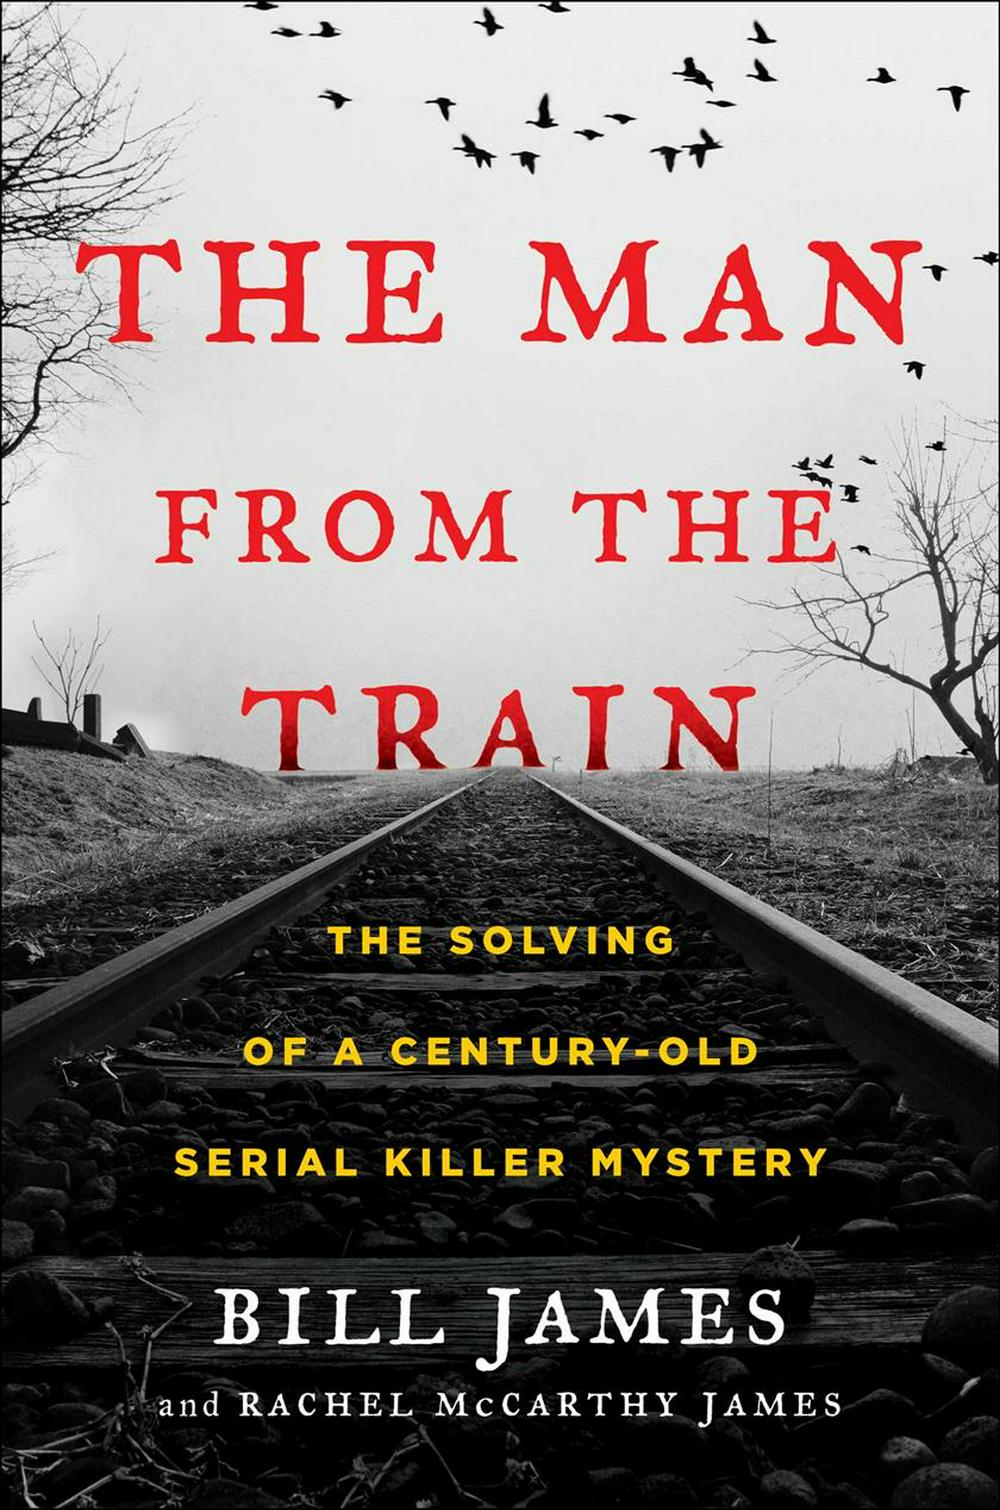 The Man from the TrainThe Solving of a Century-Old Serial Killer Mystery